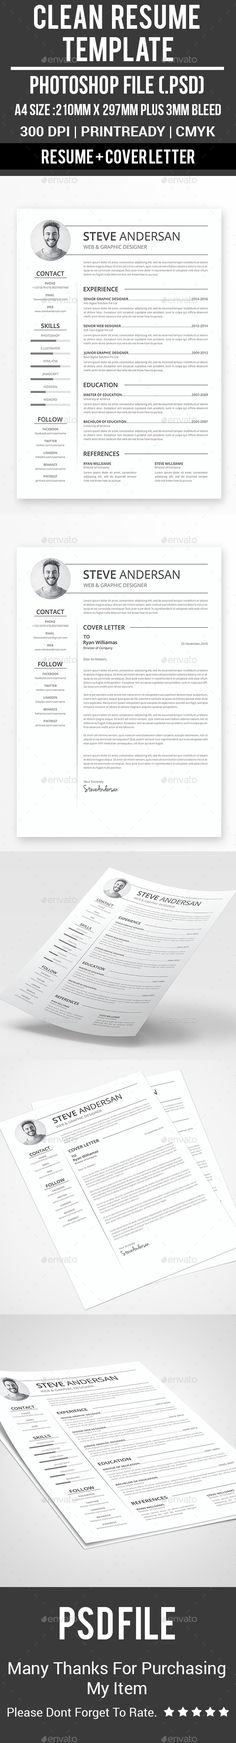 Resume Text Size Resume  Simple Resume Template Simple Resume And Font Logo